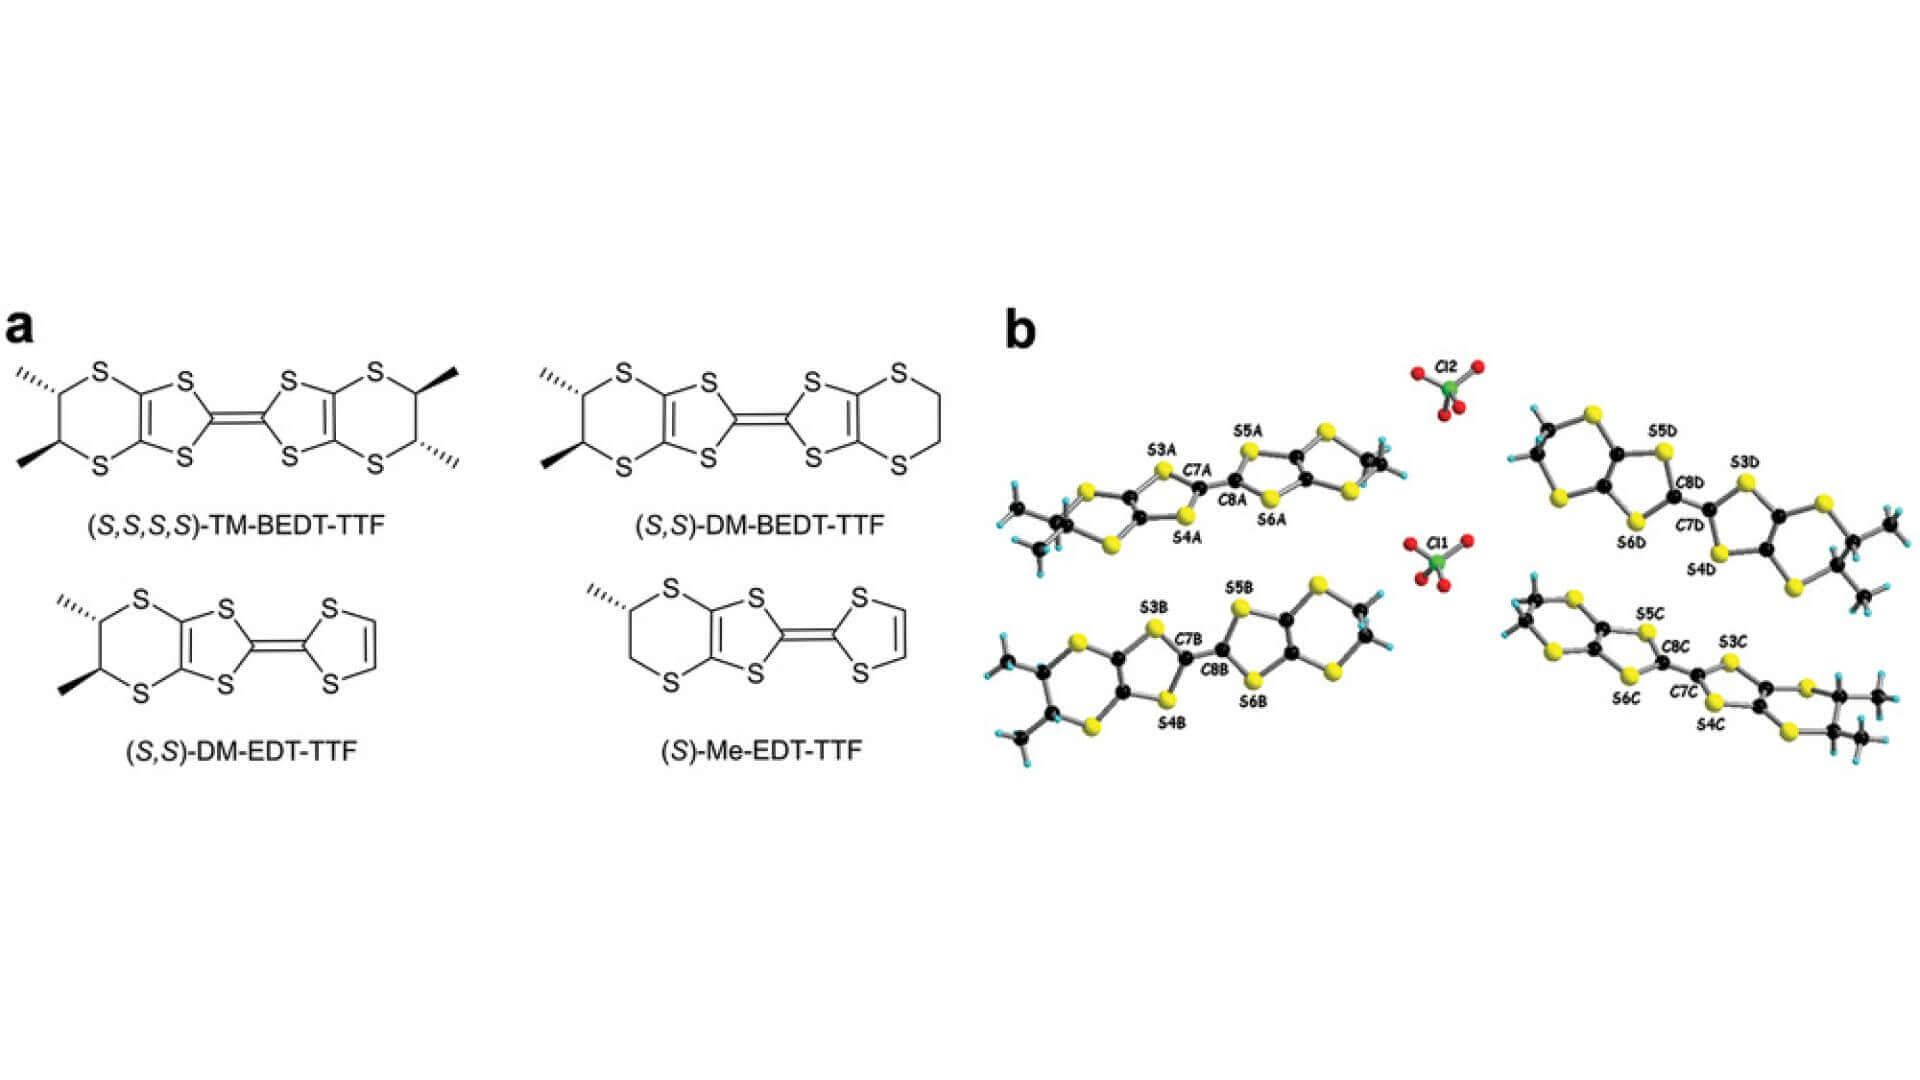 In Search of Chiral Molecular Superconductors: κ‐[(S,S)‐DM‐BEDT‐TTF]2ClO4 Revisited